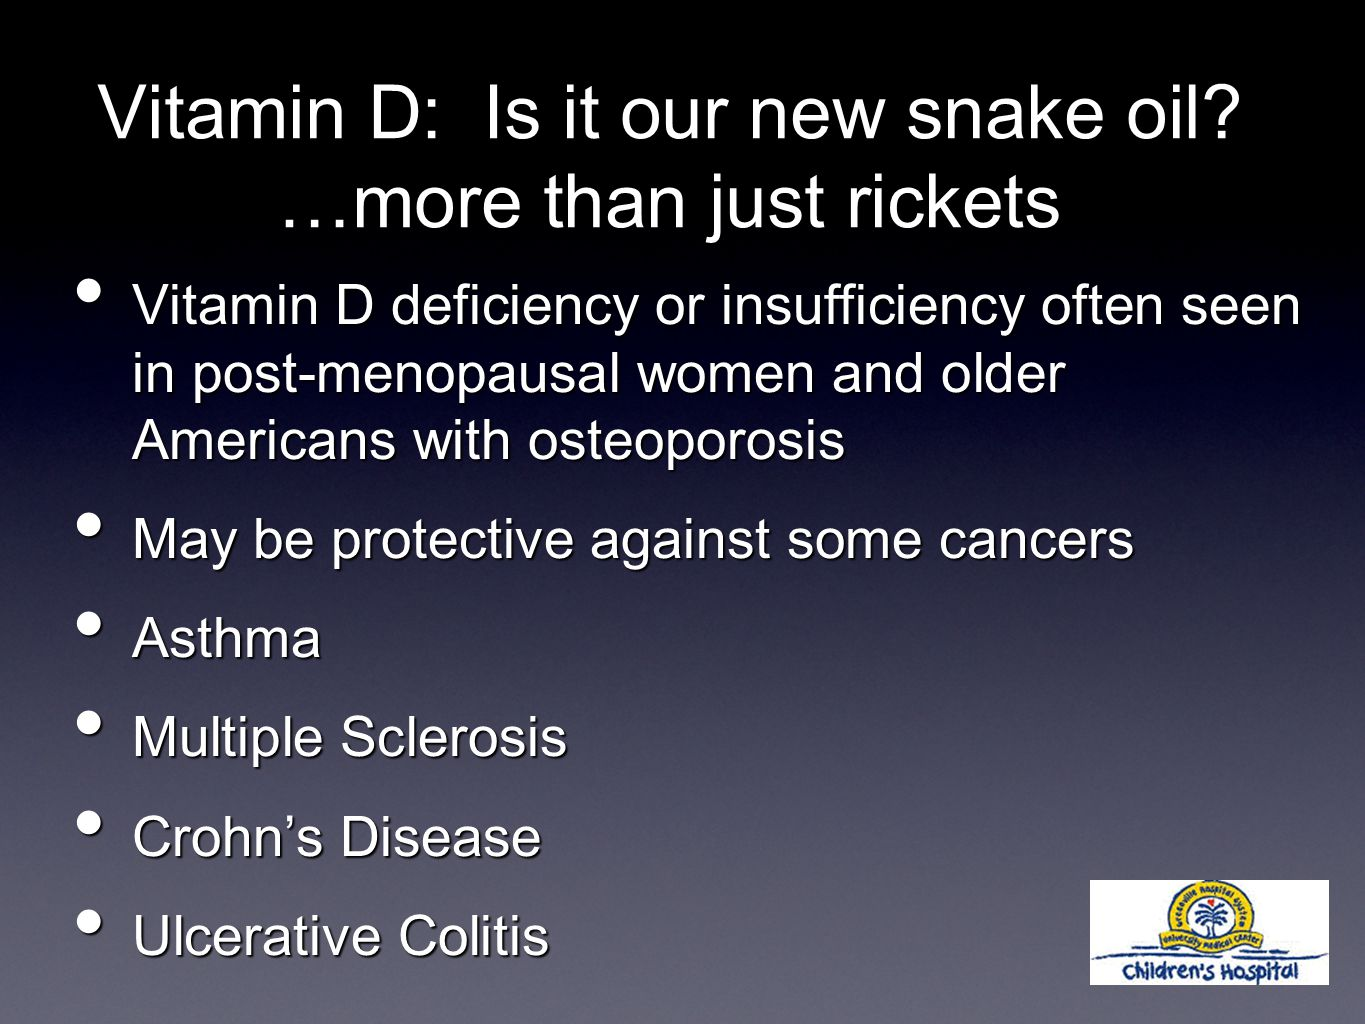 Vitamin D deficiency or insufficiency often seen in post-menopausal women and older Americans with osteoporosis Vitamin D deficiency or insufficiency often seen in post-menopausal women and older Americans with osteoporosis May be protective against some cancers May be protective against some cancers Asthma Asthma Multiple Sclerosis Multiple Sclerosis Crohn's Disease Crohn's Disease Ulcerative Colitis Ulcerative Colitis Vitamin D: Is it our new snake oil.